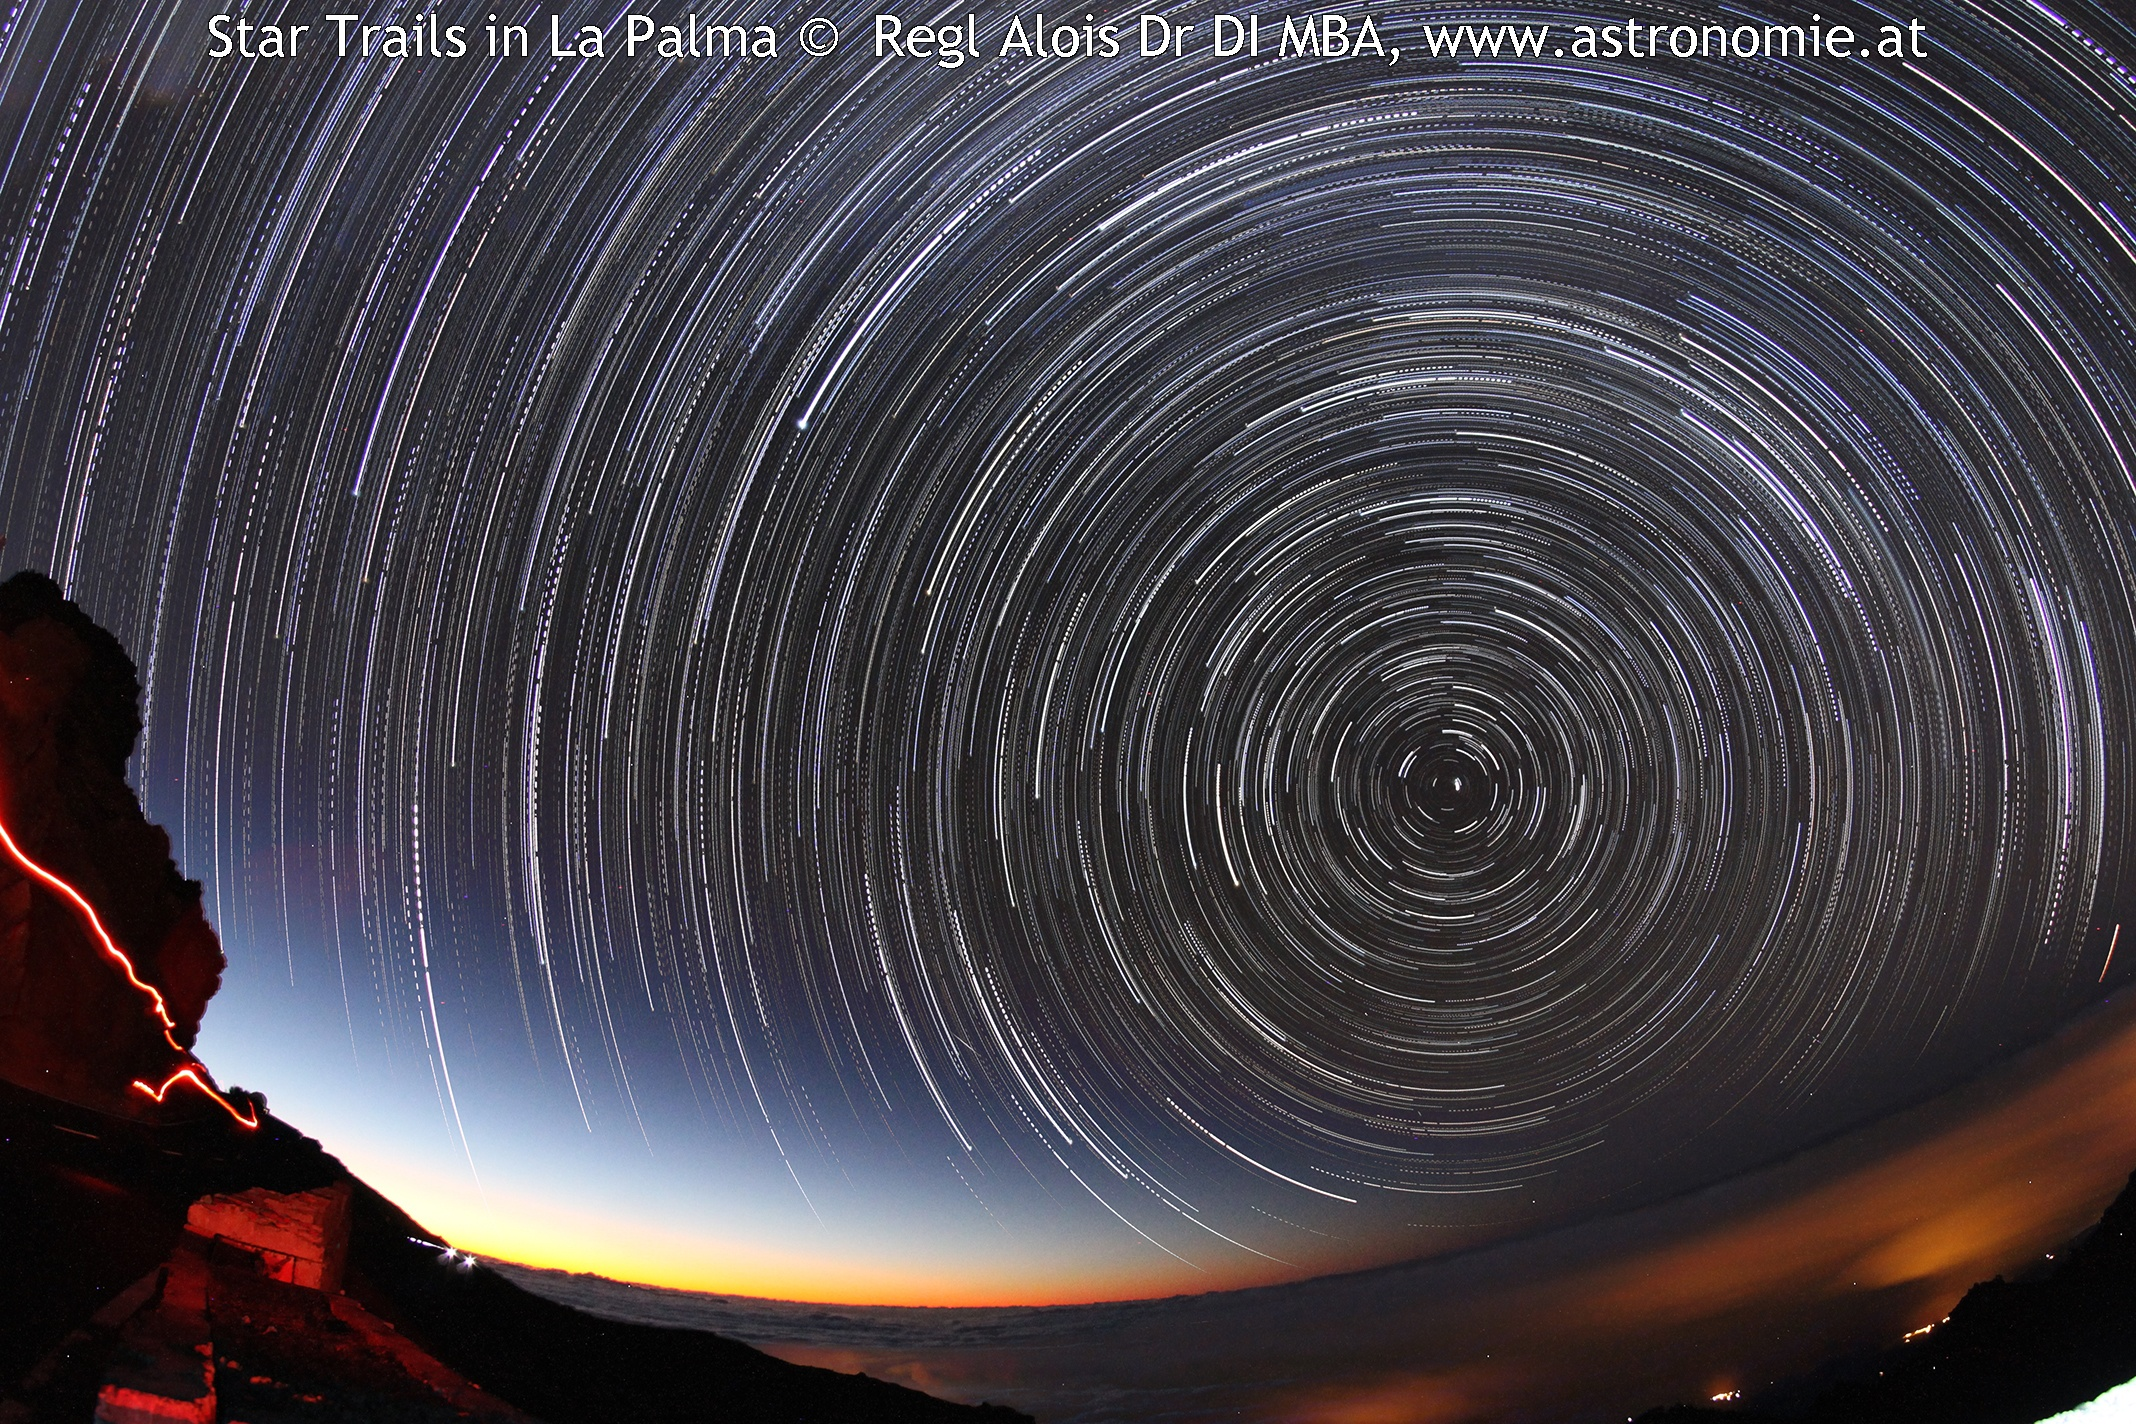 -Star trails © image-owner(s)